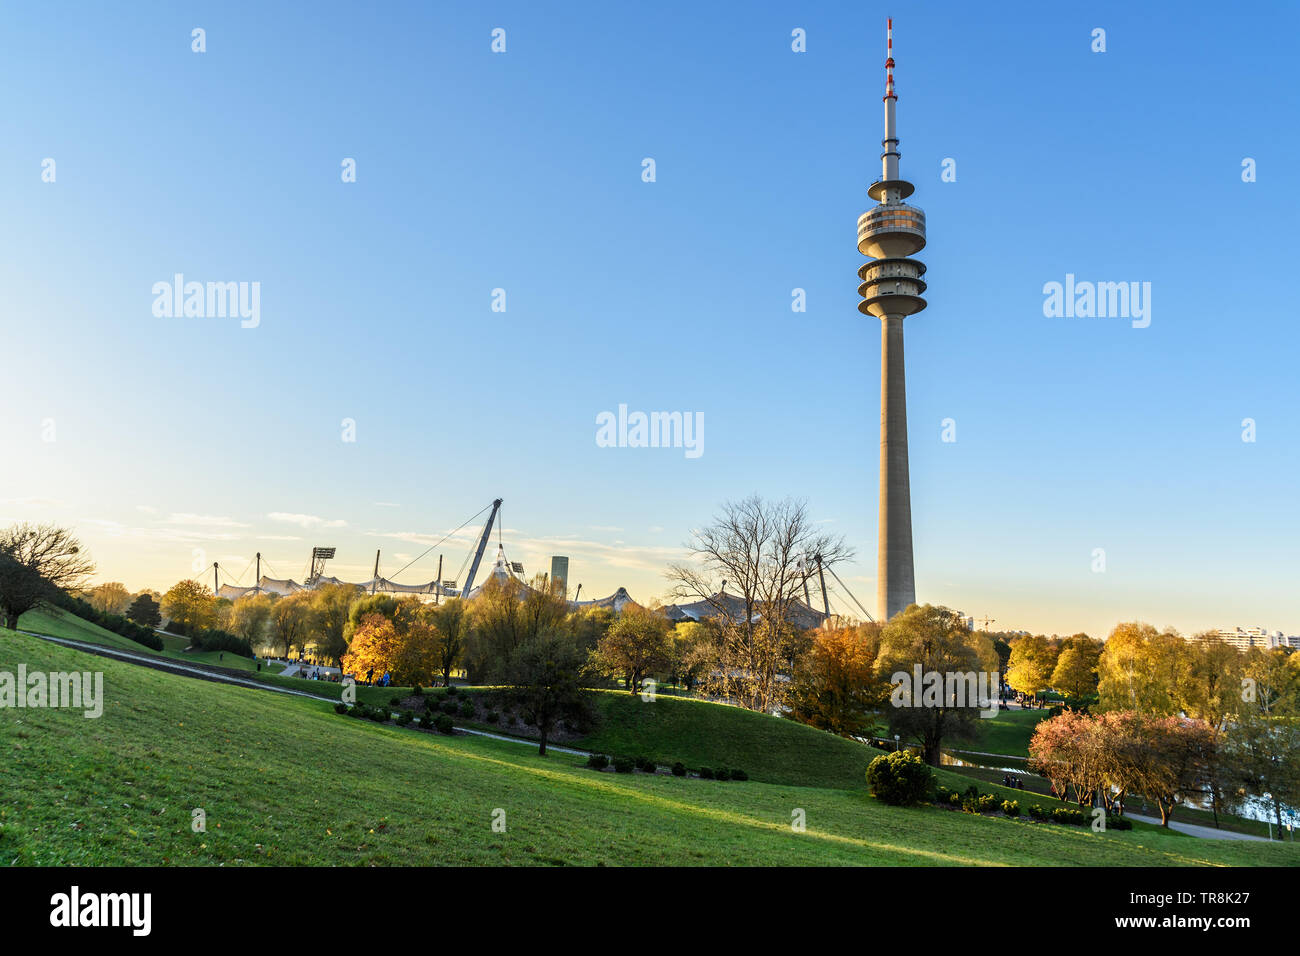 Munich, Germany - November 01, 2018: Olympic tower in Olympic Park or Olympiapark in Munich - Stock Image